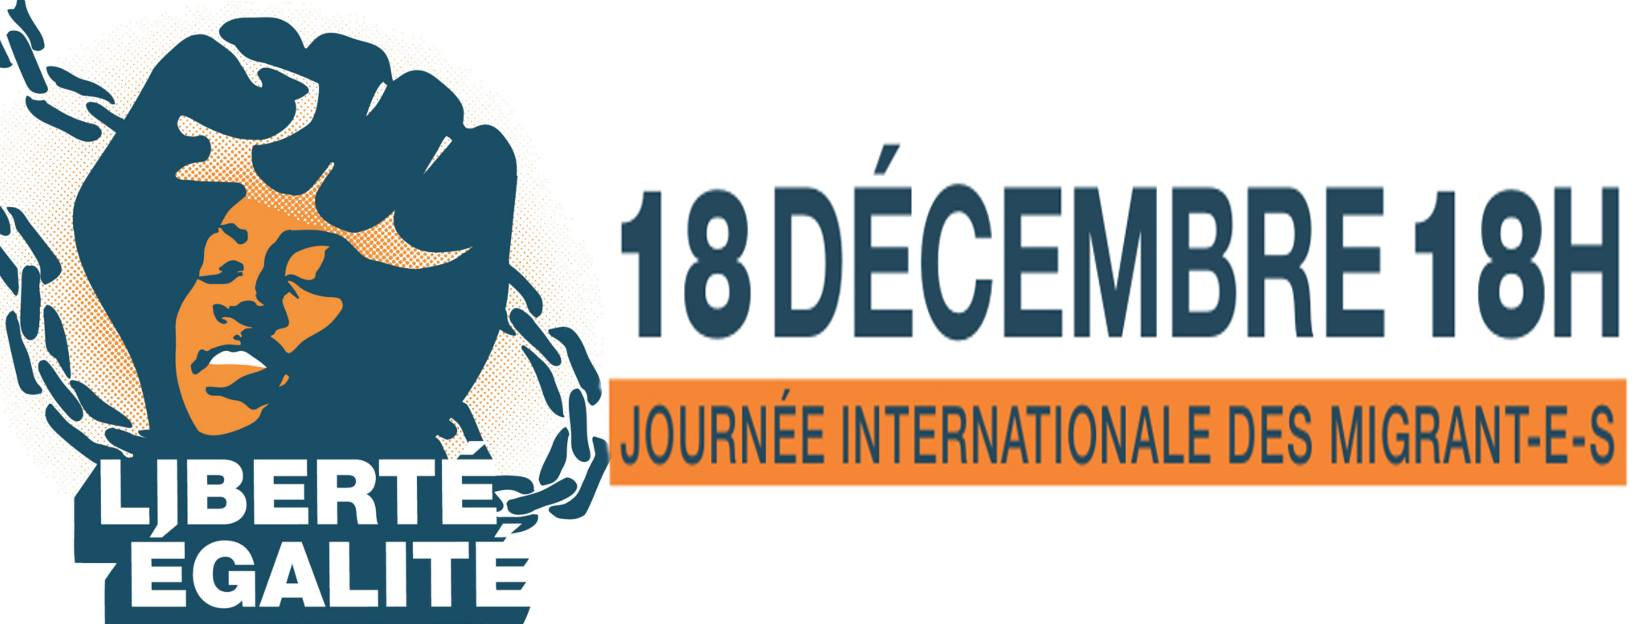 18 décembre 2018 – Journée Internationale des Migrants